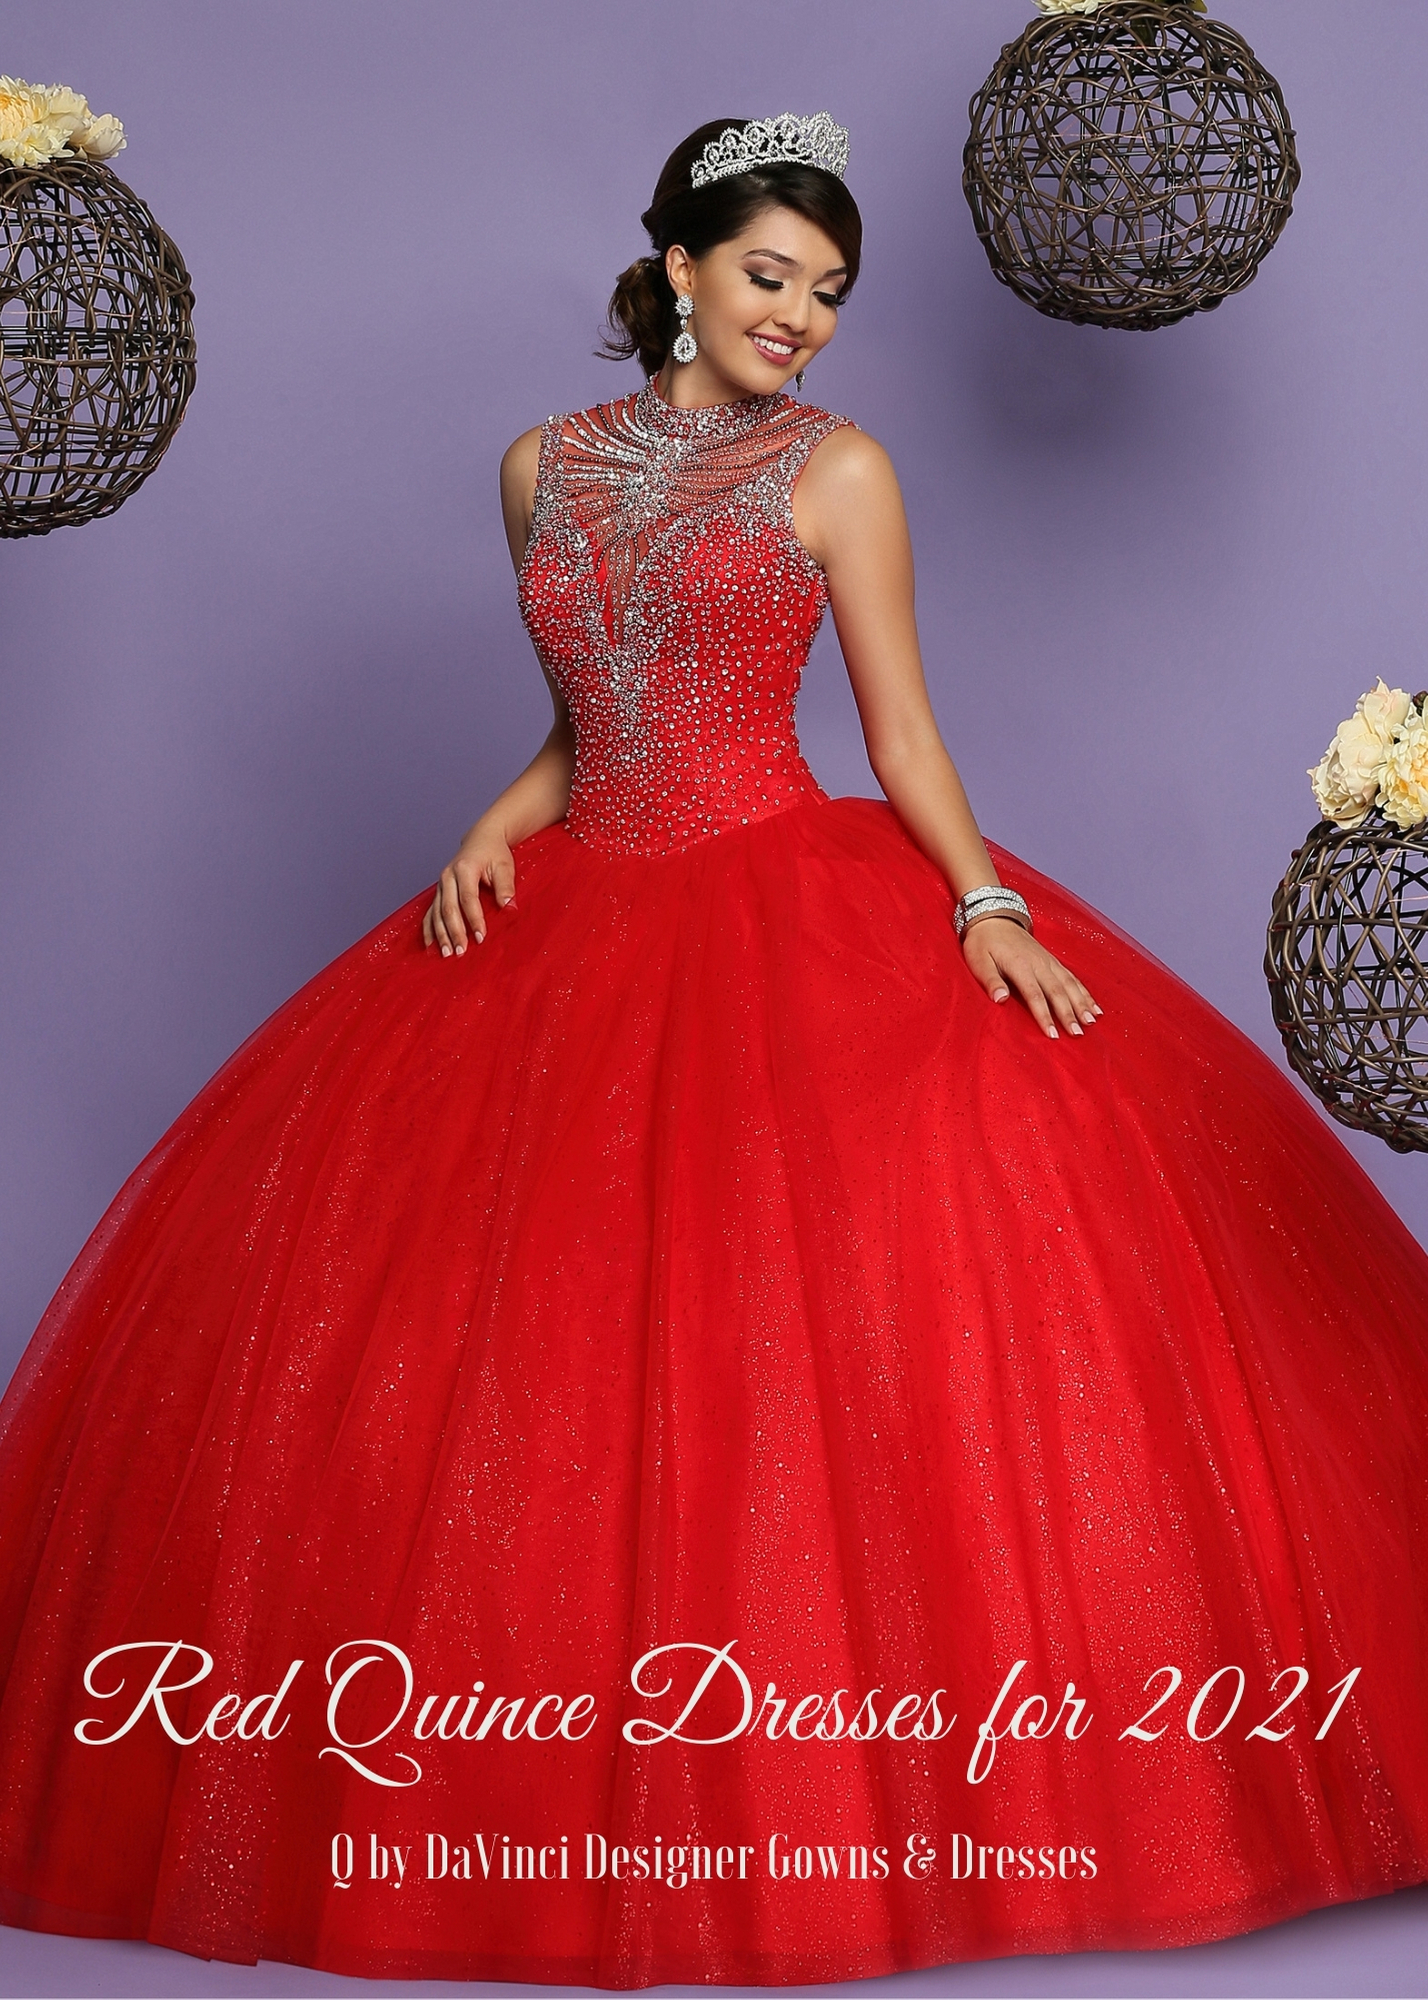 Red Quinceanera Dresses for 2021 – Q by DaVinci